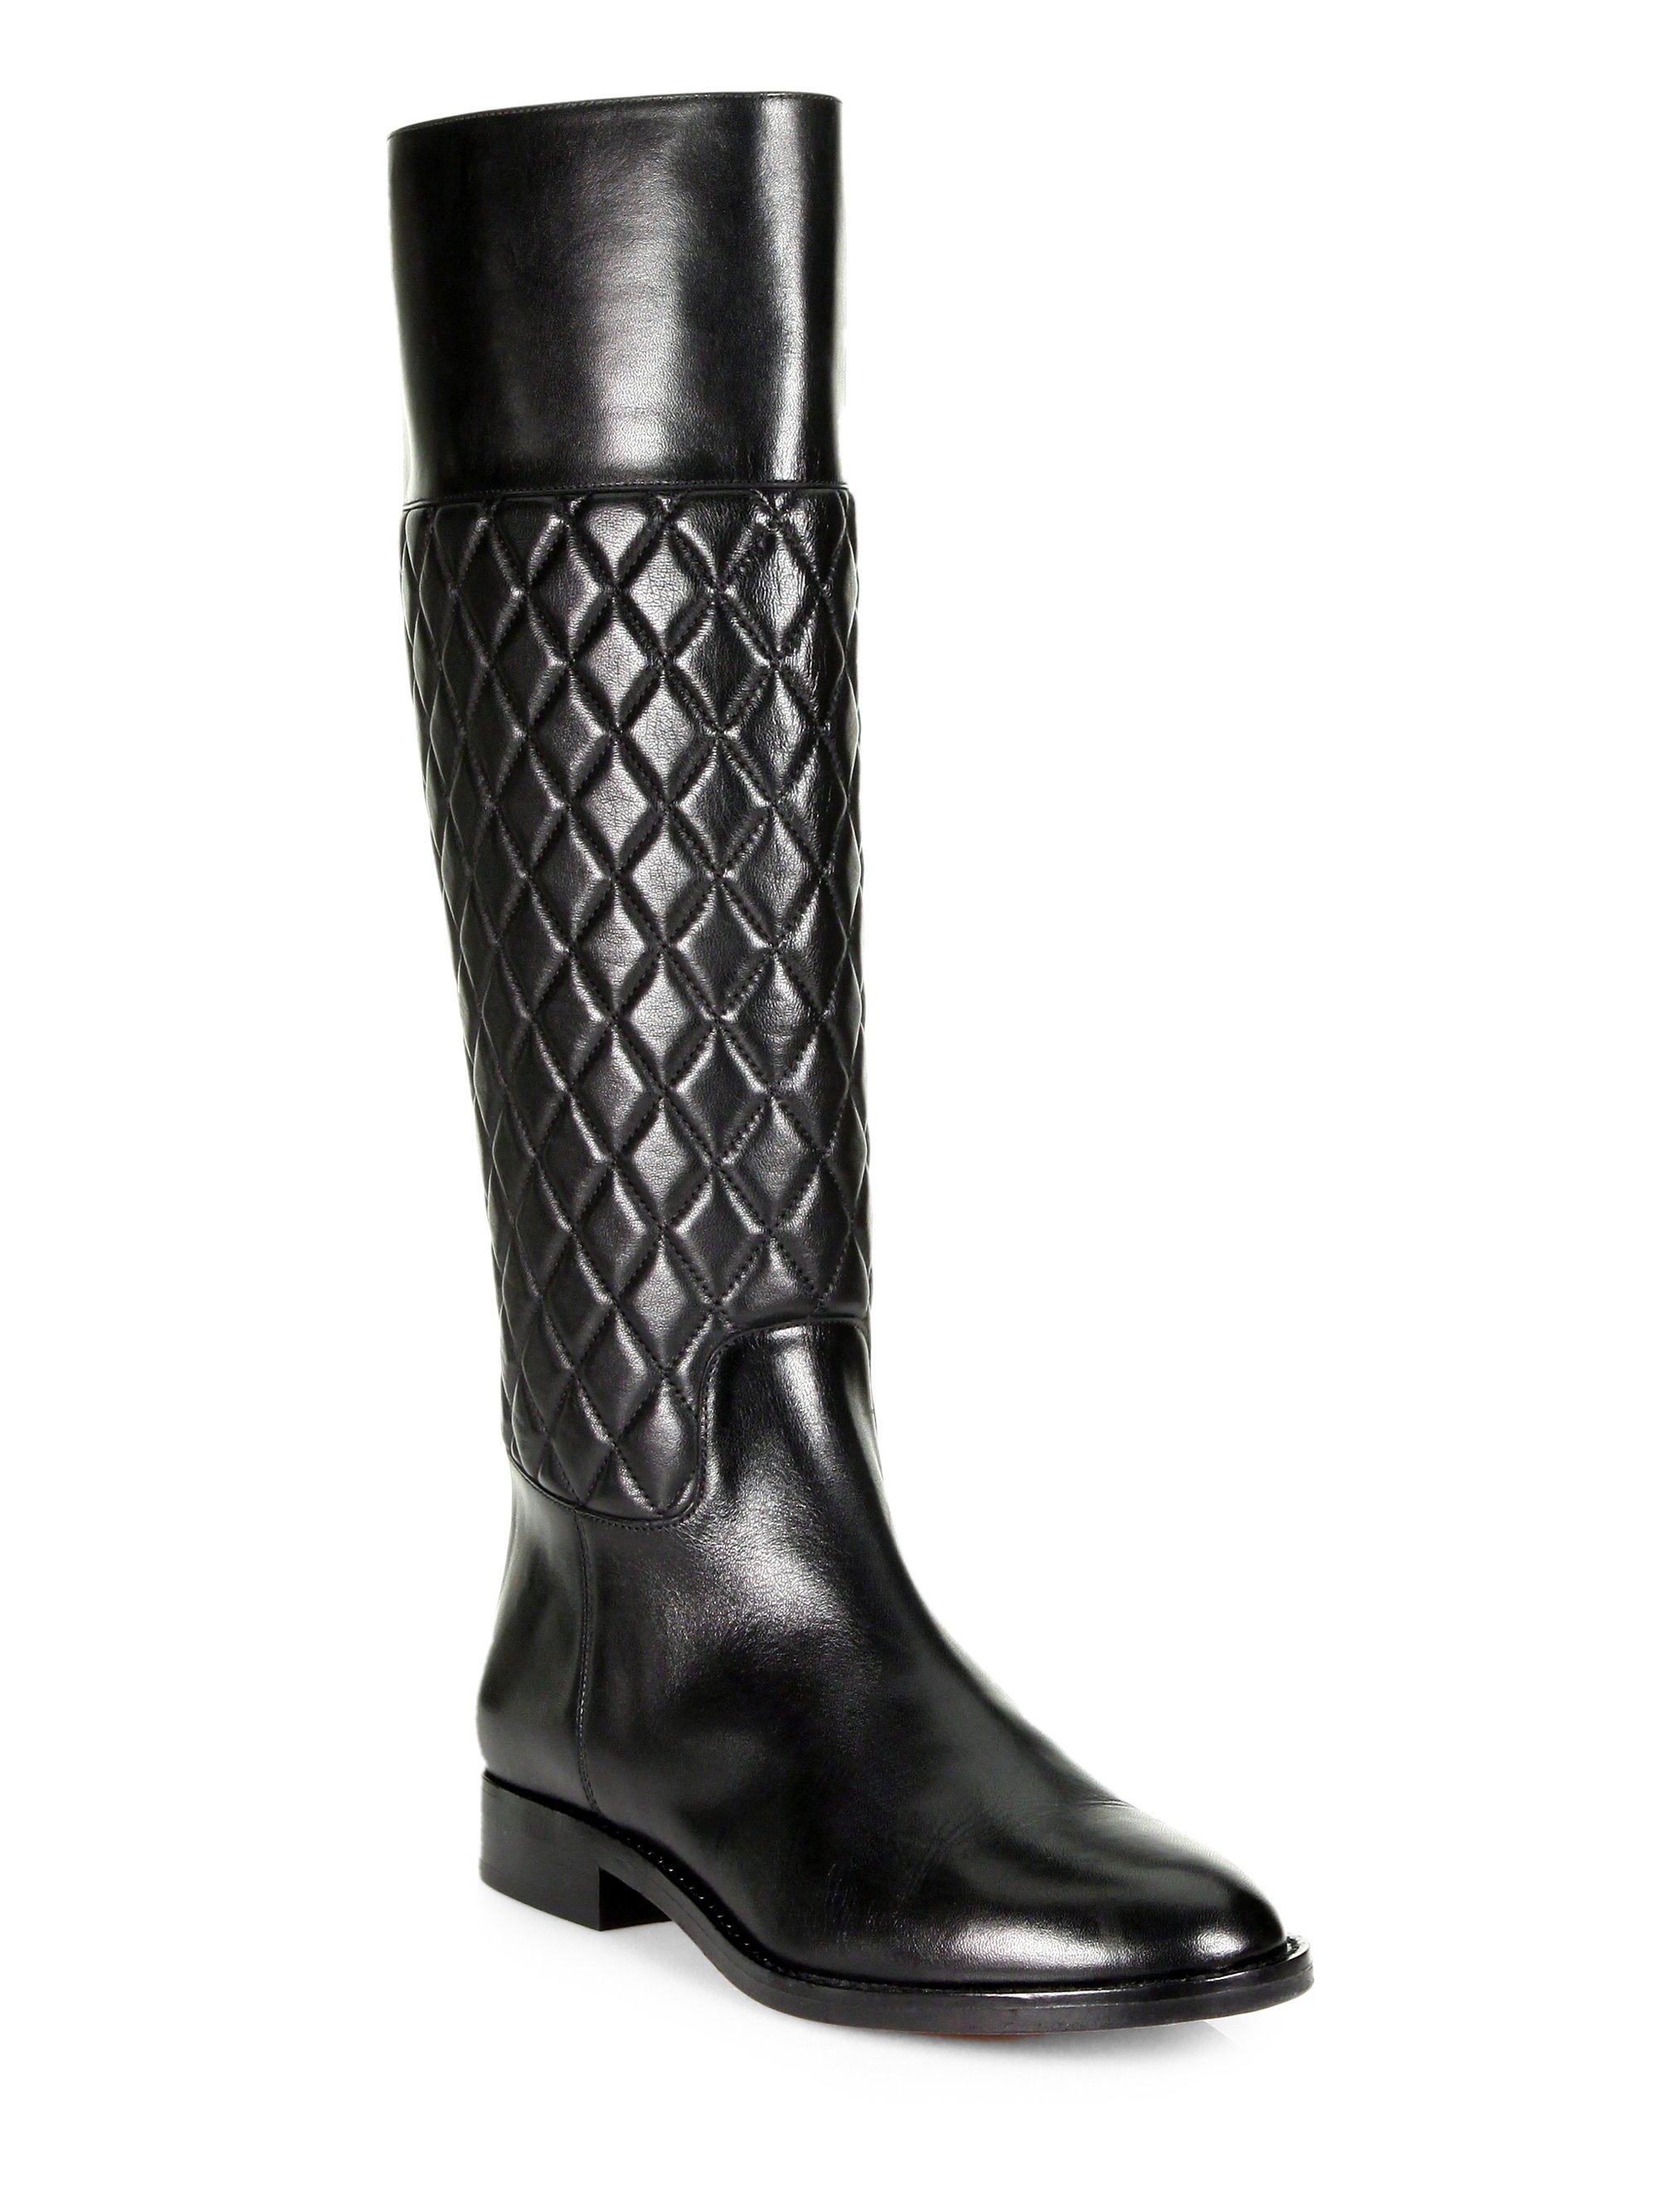 Michael kors Mina Quilted Leather Riding Boots in Black | Lyst